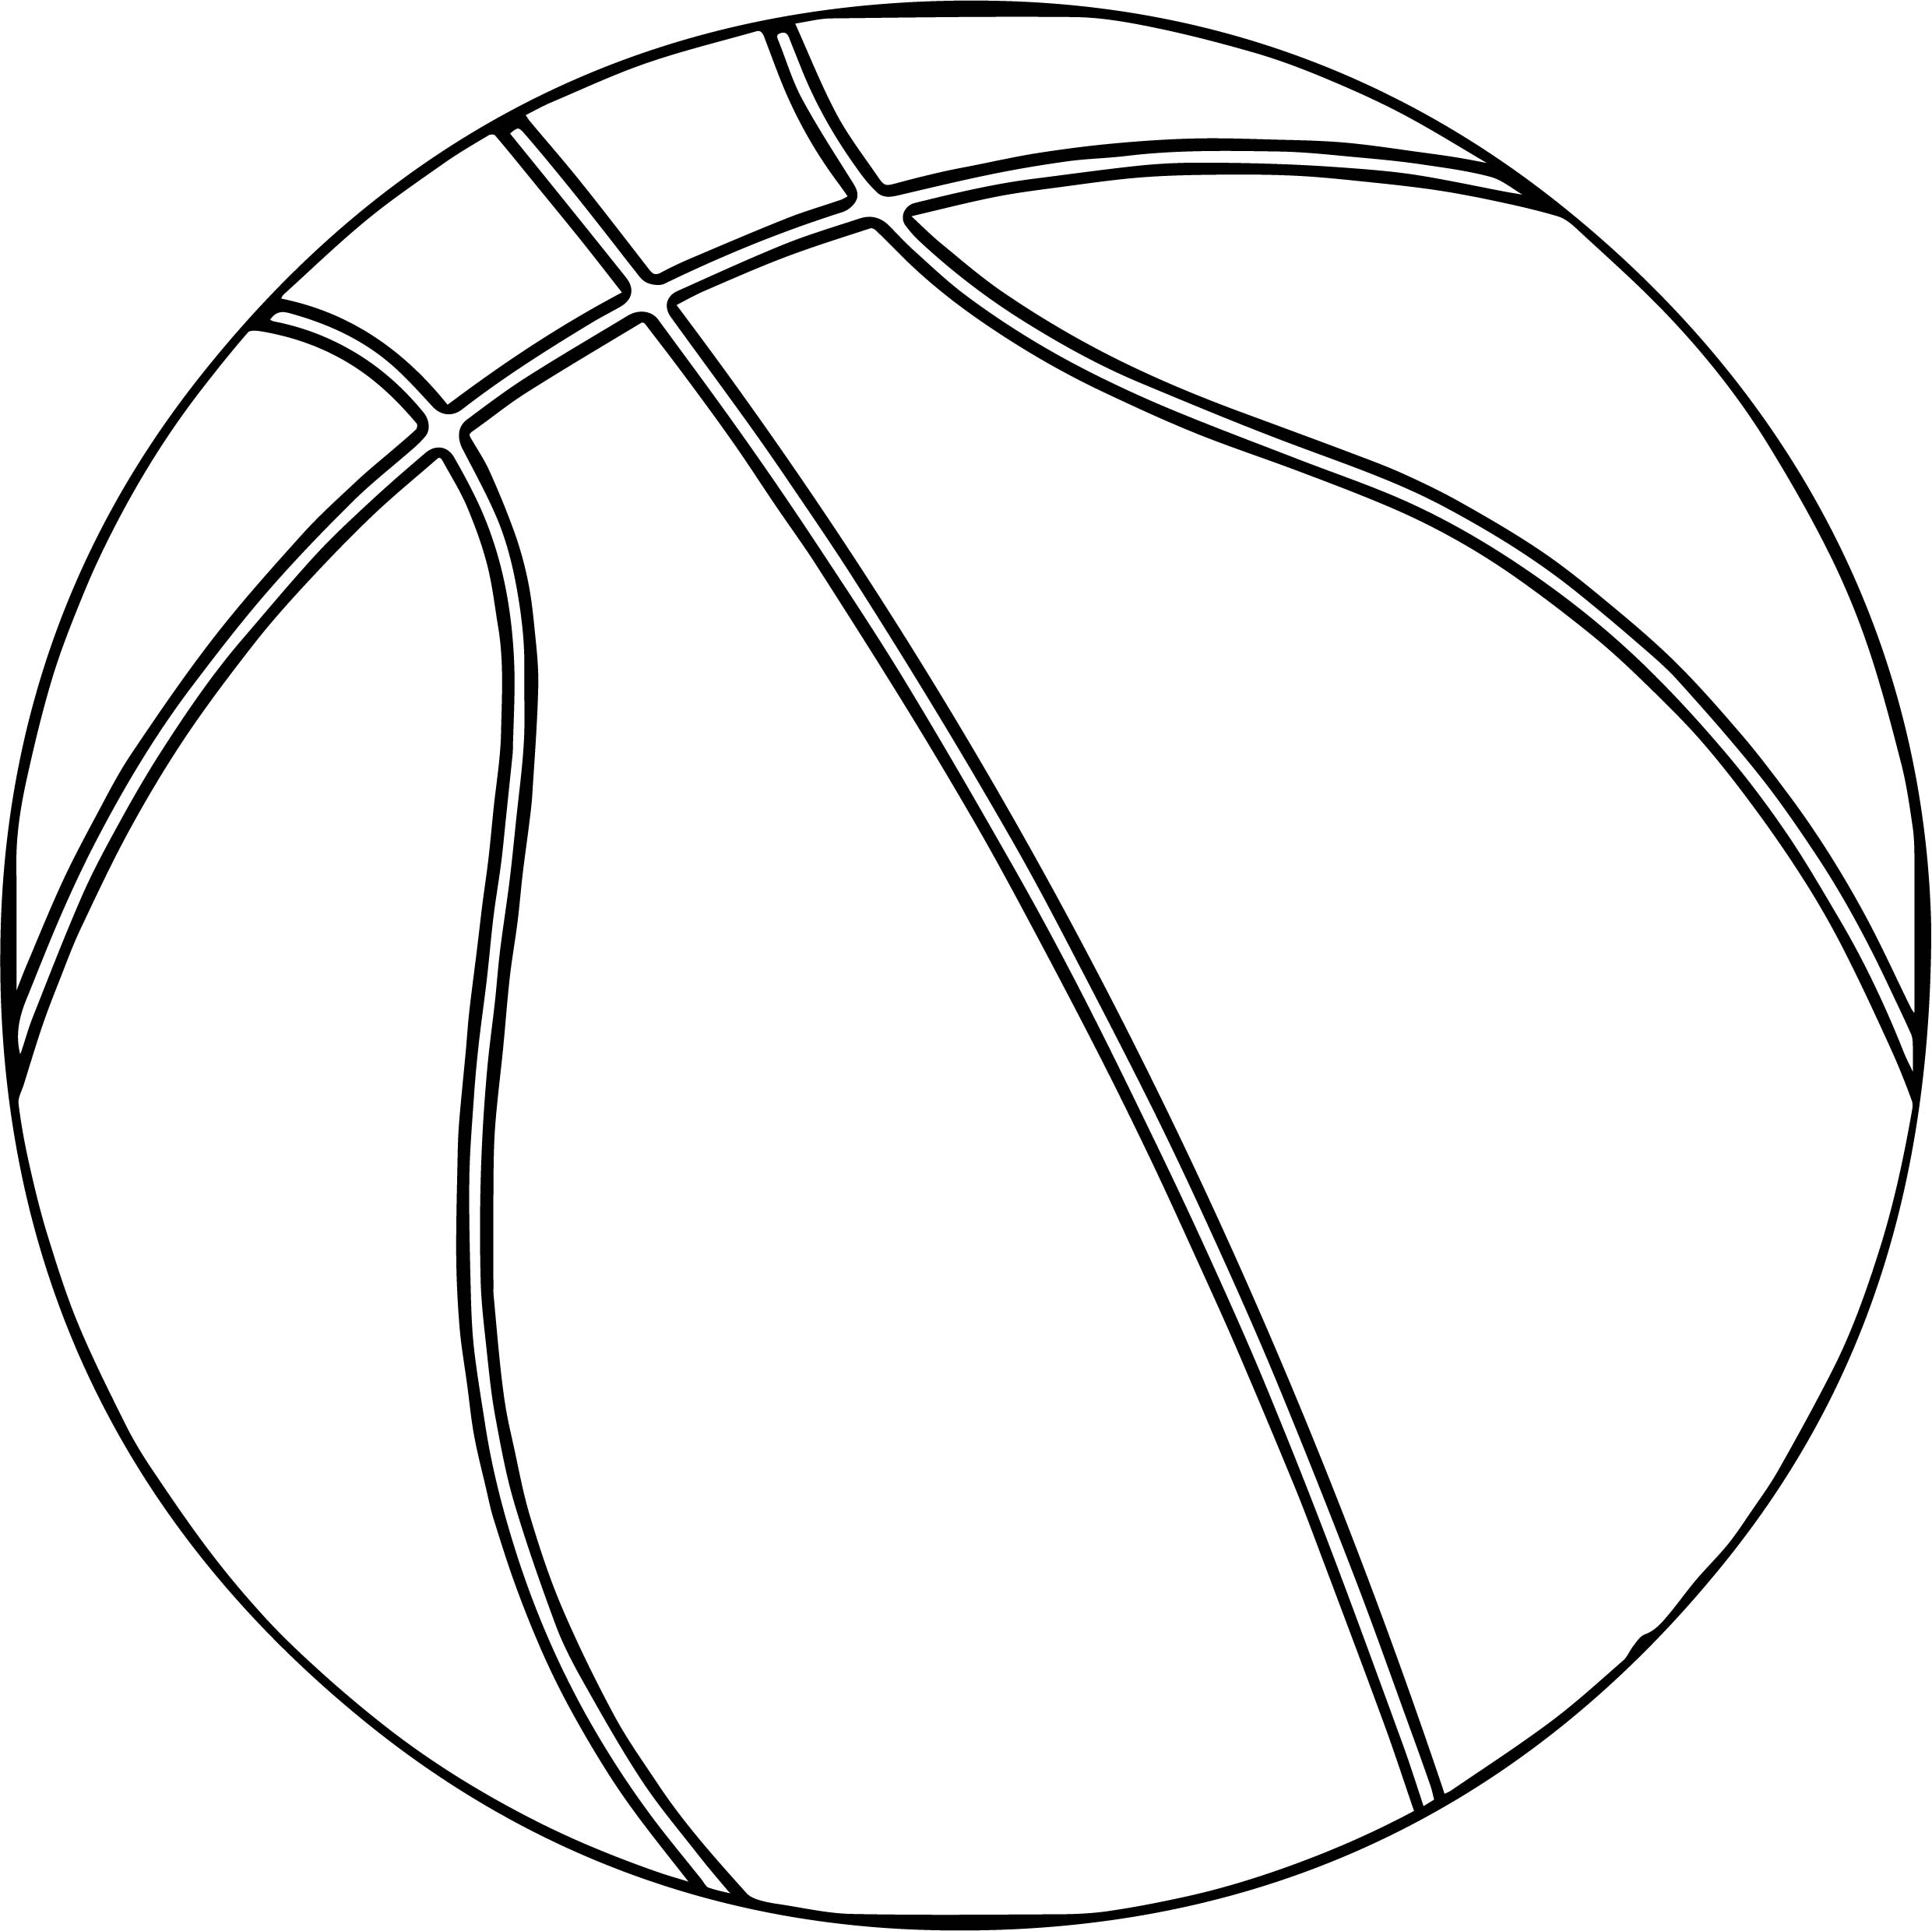 One Basketball Ball Playing Basketball Coloring Page